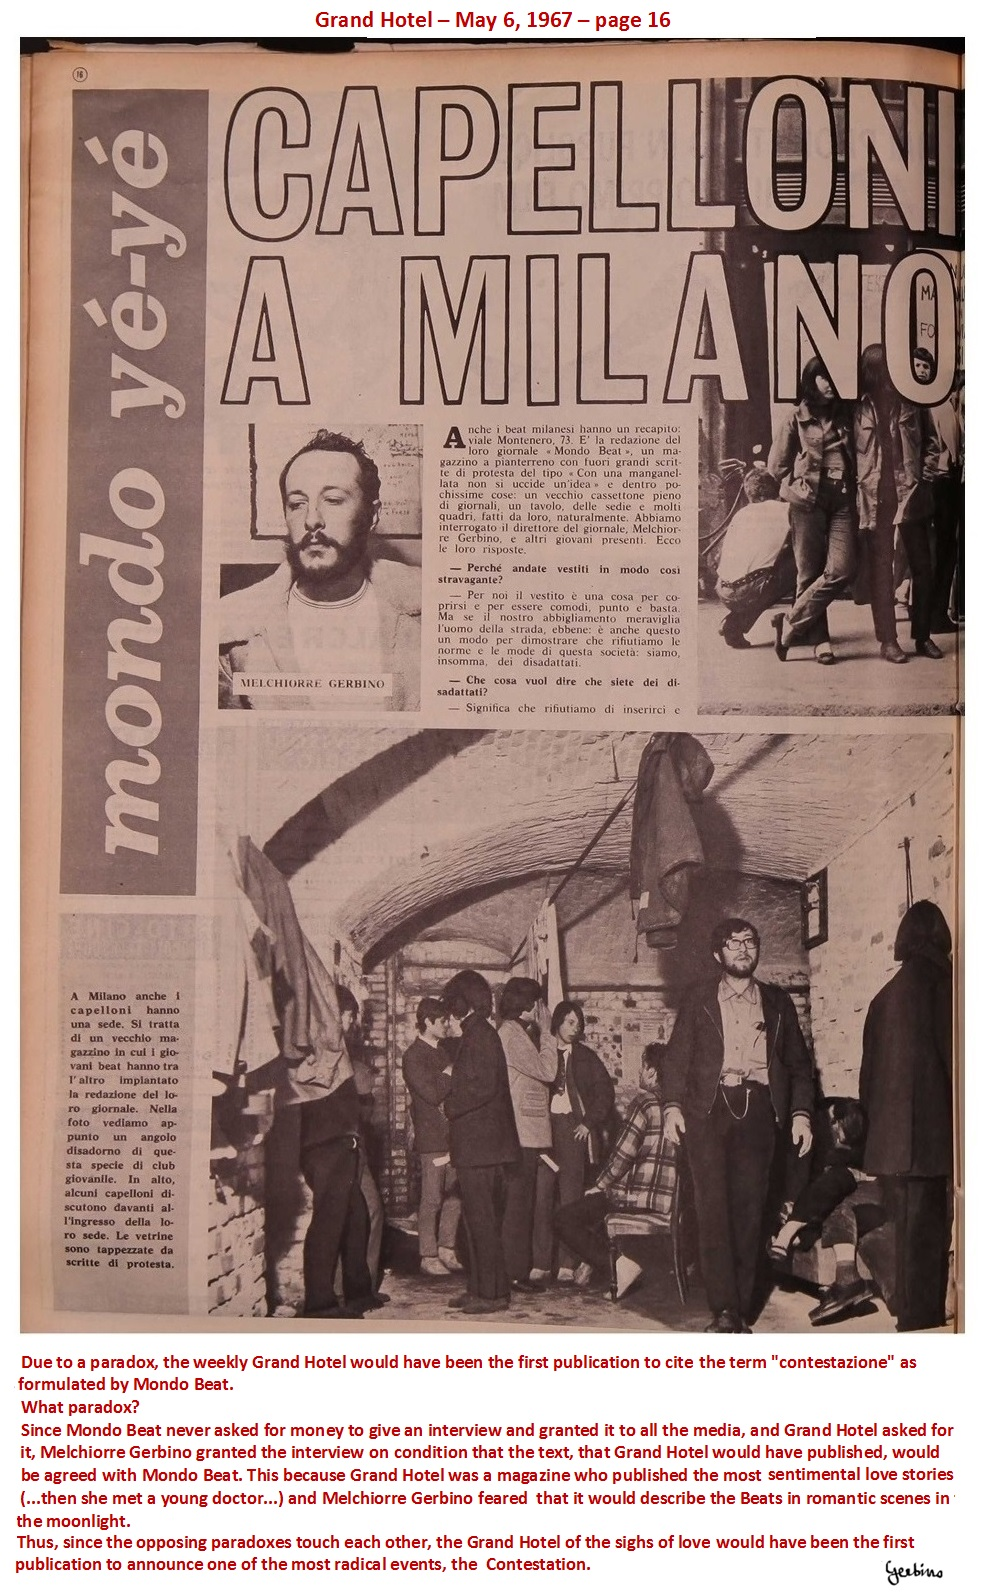 This article of Grand Hotel appeared on May 6, 1967 (1)